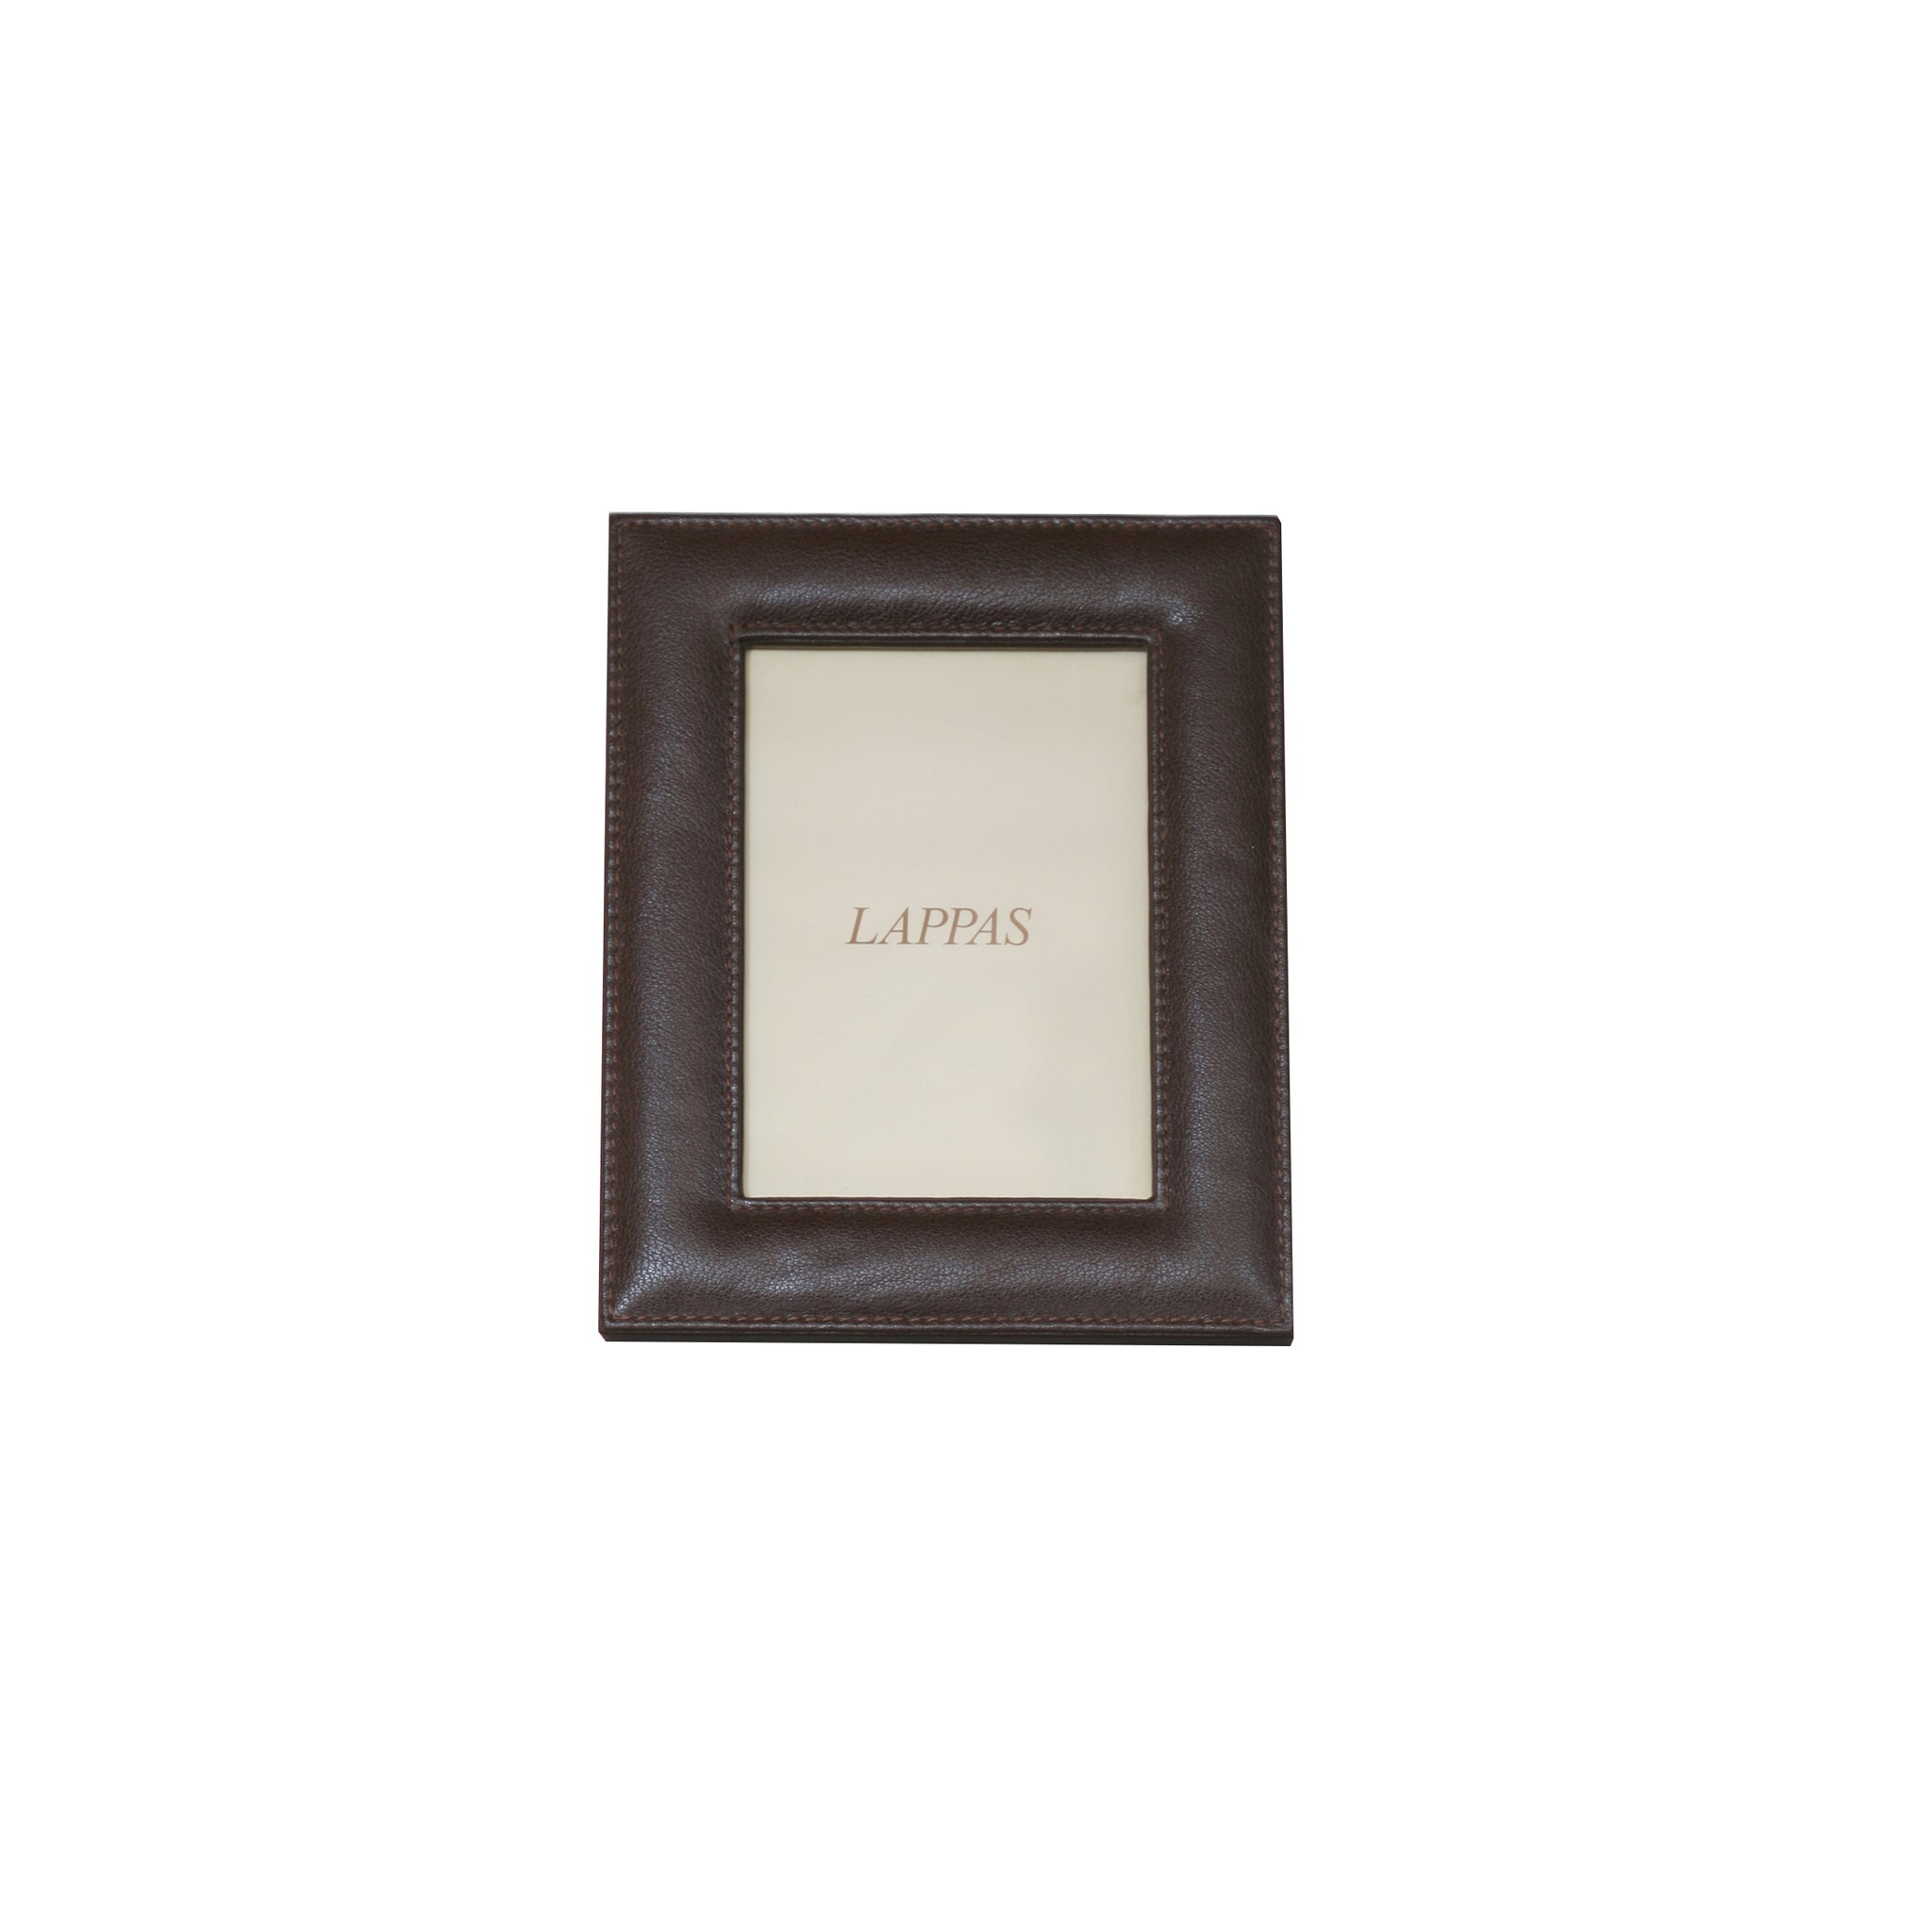 8 x 10 brown leather frame